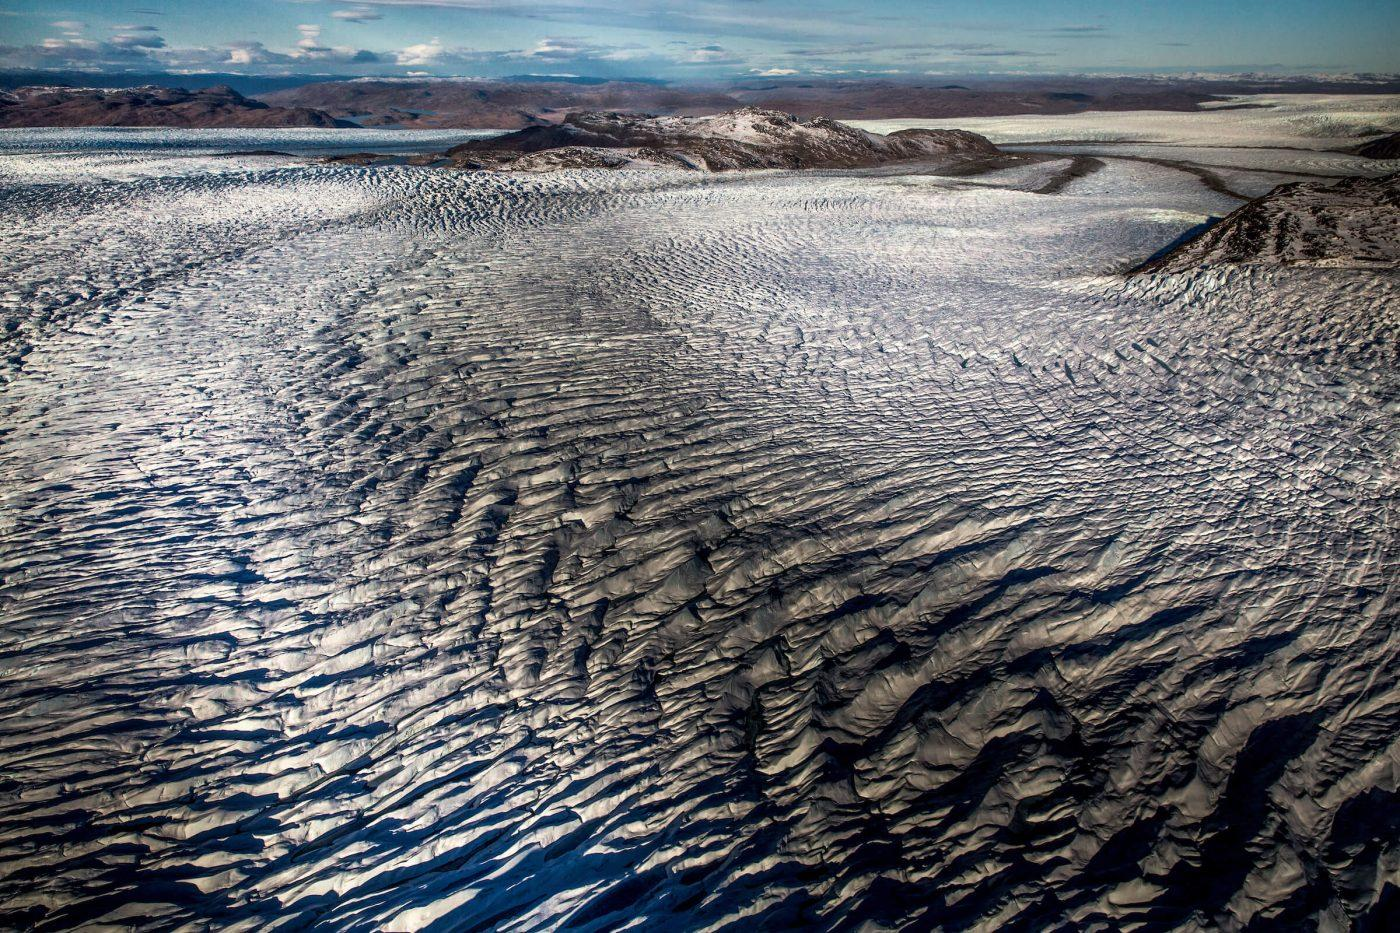 Lines in the ice sheet seen from an Air Zafari flight near Kangerlussuaq in Greenland. By Mads Pihl